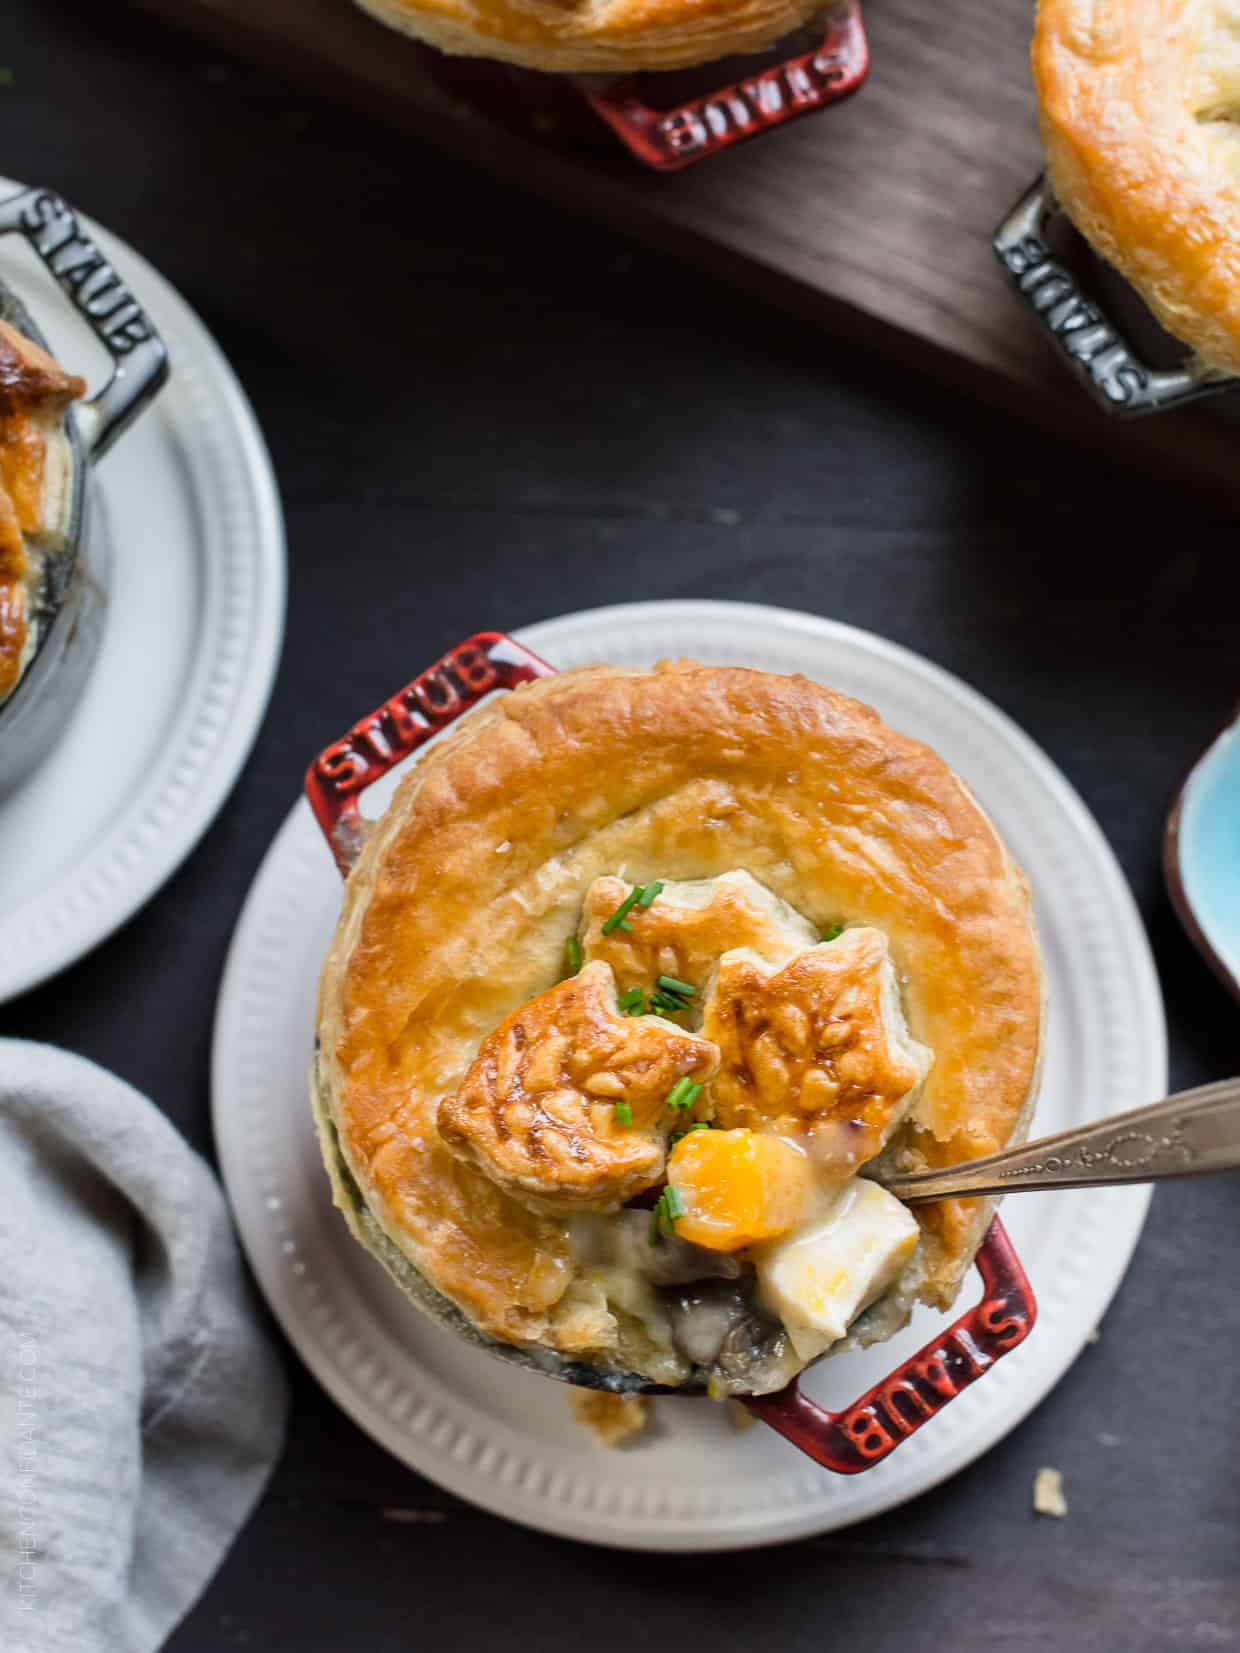 Turkey Pumpkin Pot Pie adds an extra helping of pumpkin season to comfort food. It's the perfect solution to leftover turkey, or a substitute for the big bird itself at Thanksgiving. Or if you wish, make it with chicken, too!